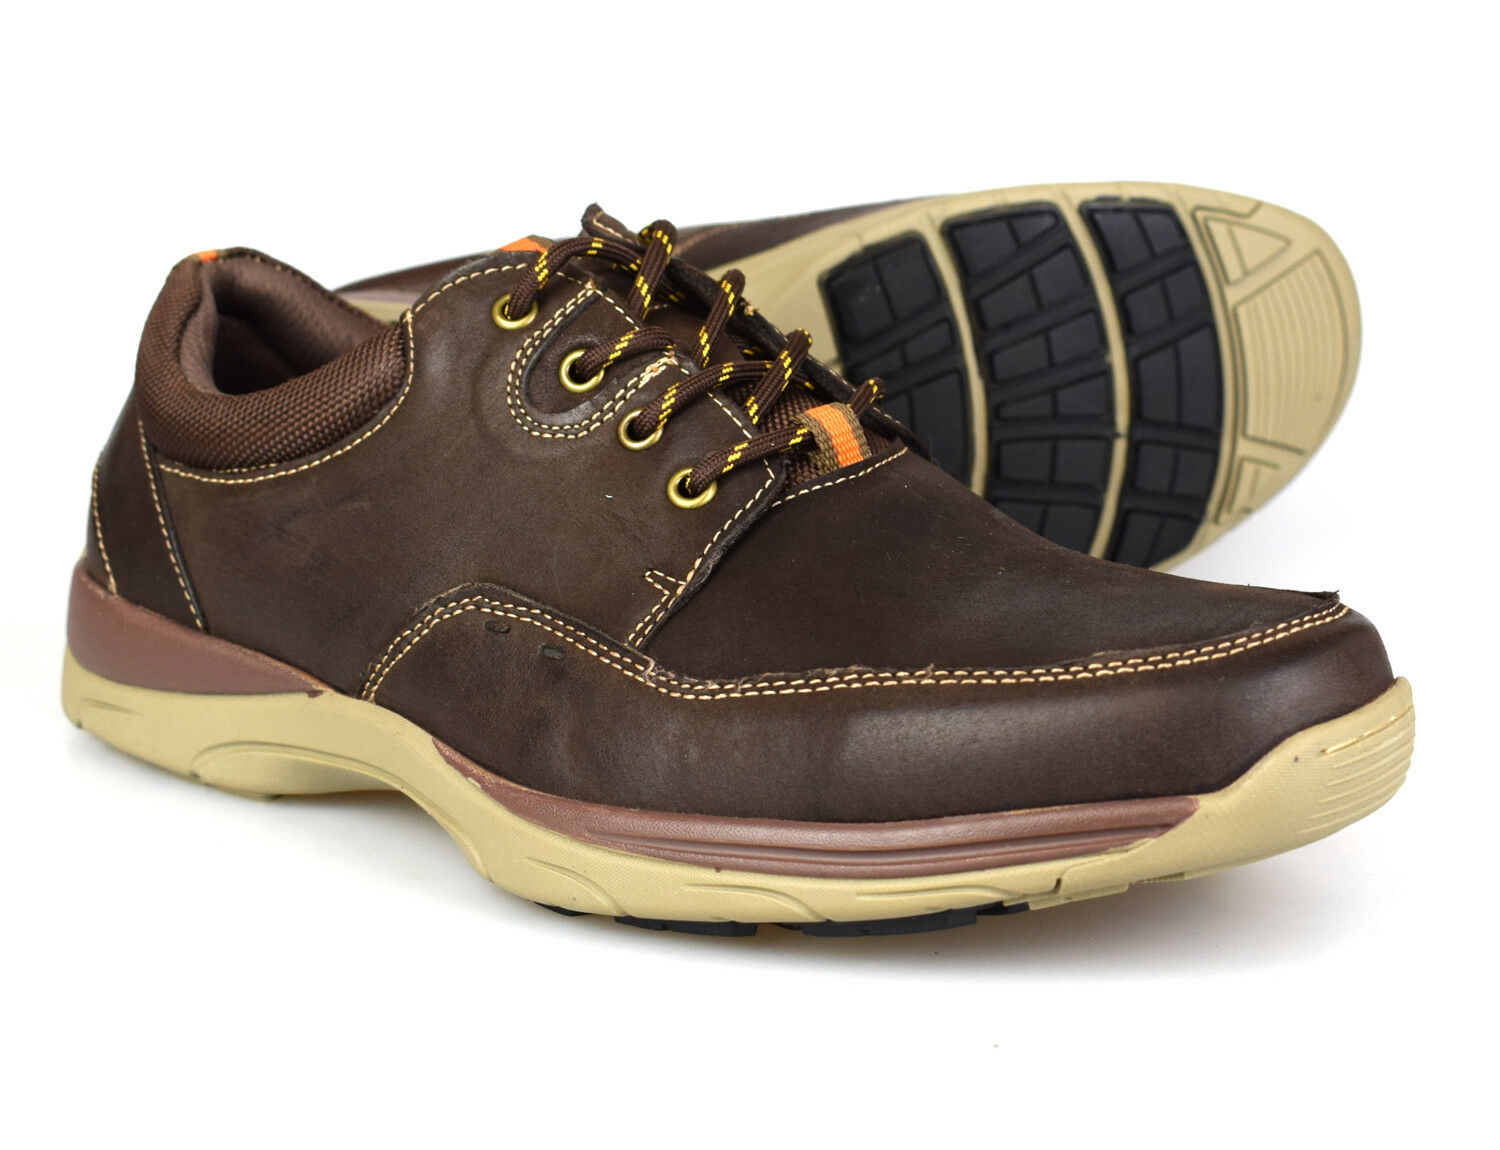 Catesby Mens Casual Brown Leather shoes BD171883 UK 7-12 Free UK P&P